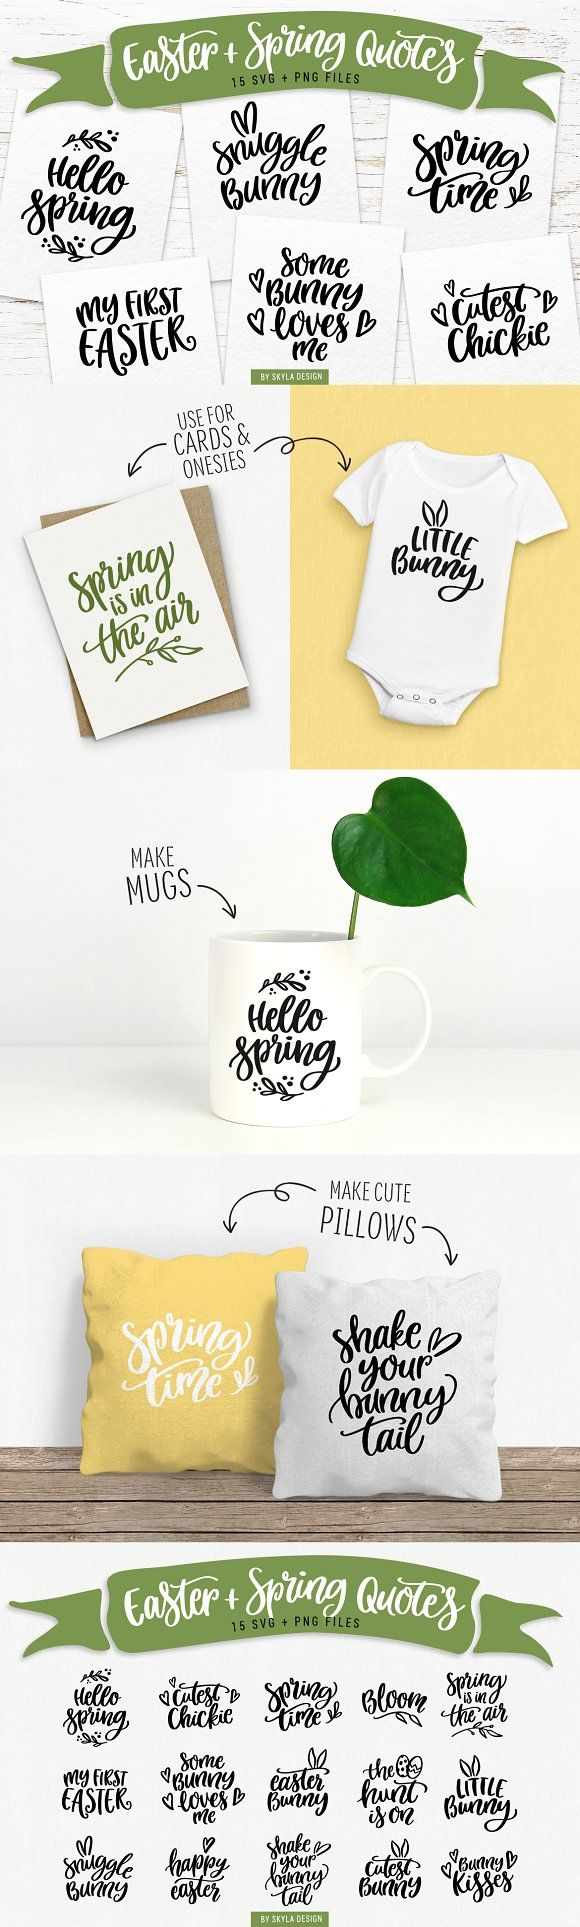 Easter & Spring quotes SVG bundle by Skyla Design on @creativemarket Easter & Spring quotes SVG bundle by Skyla Design on Creative Market